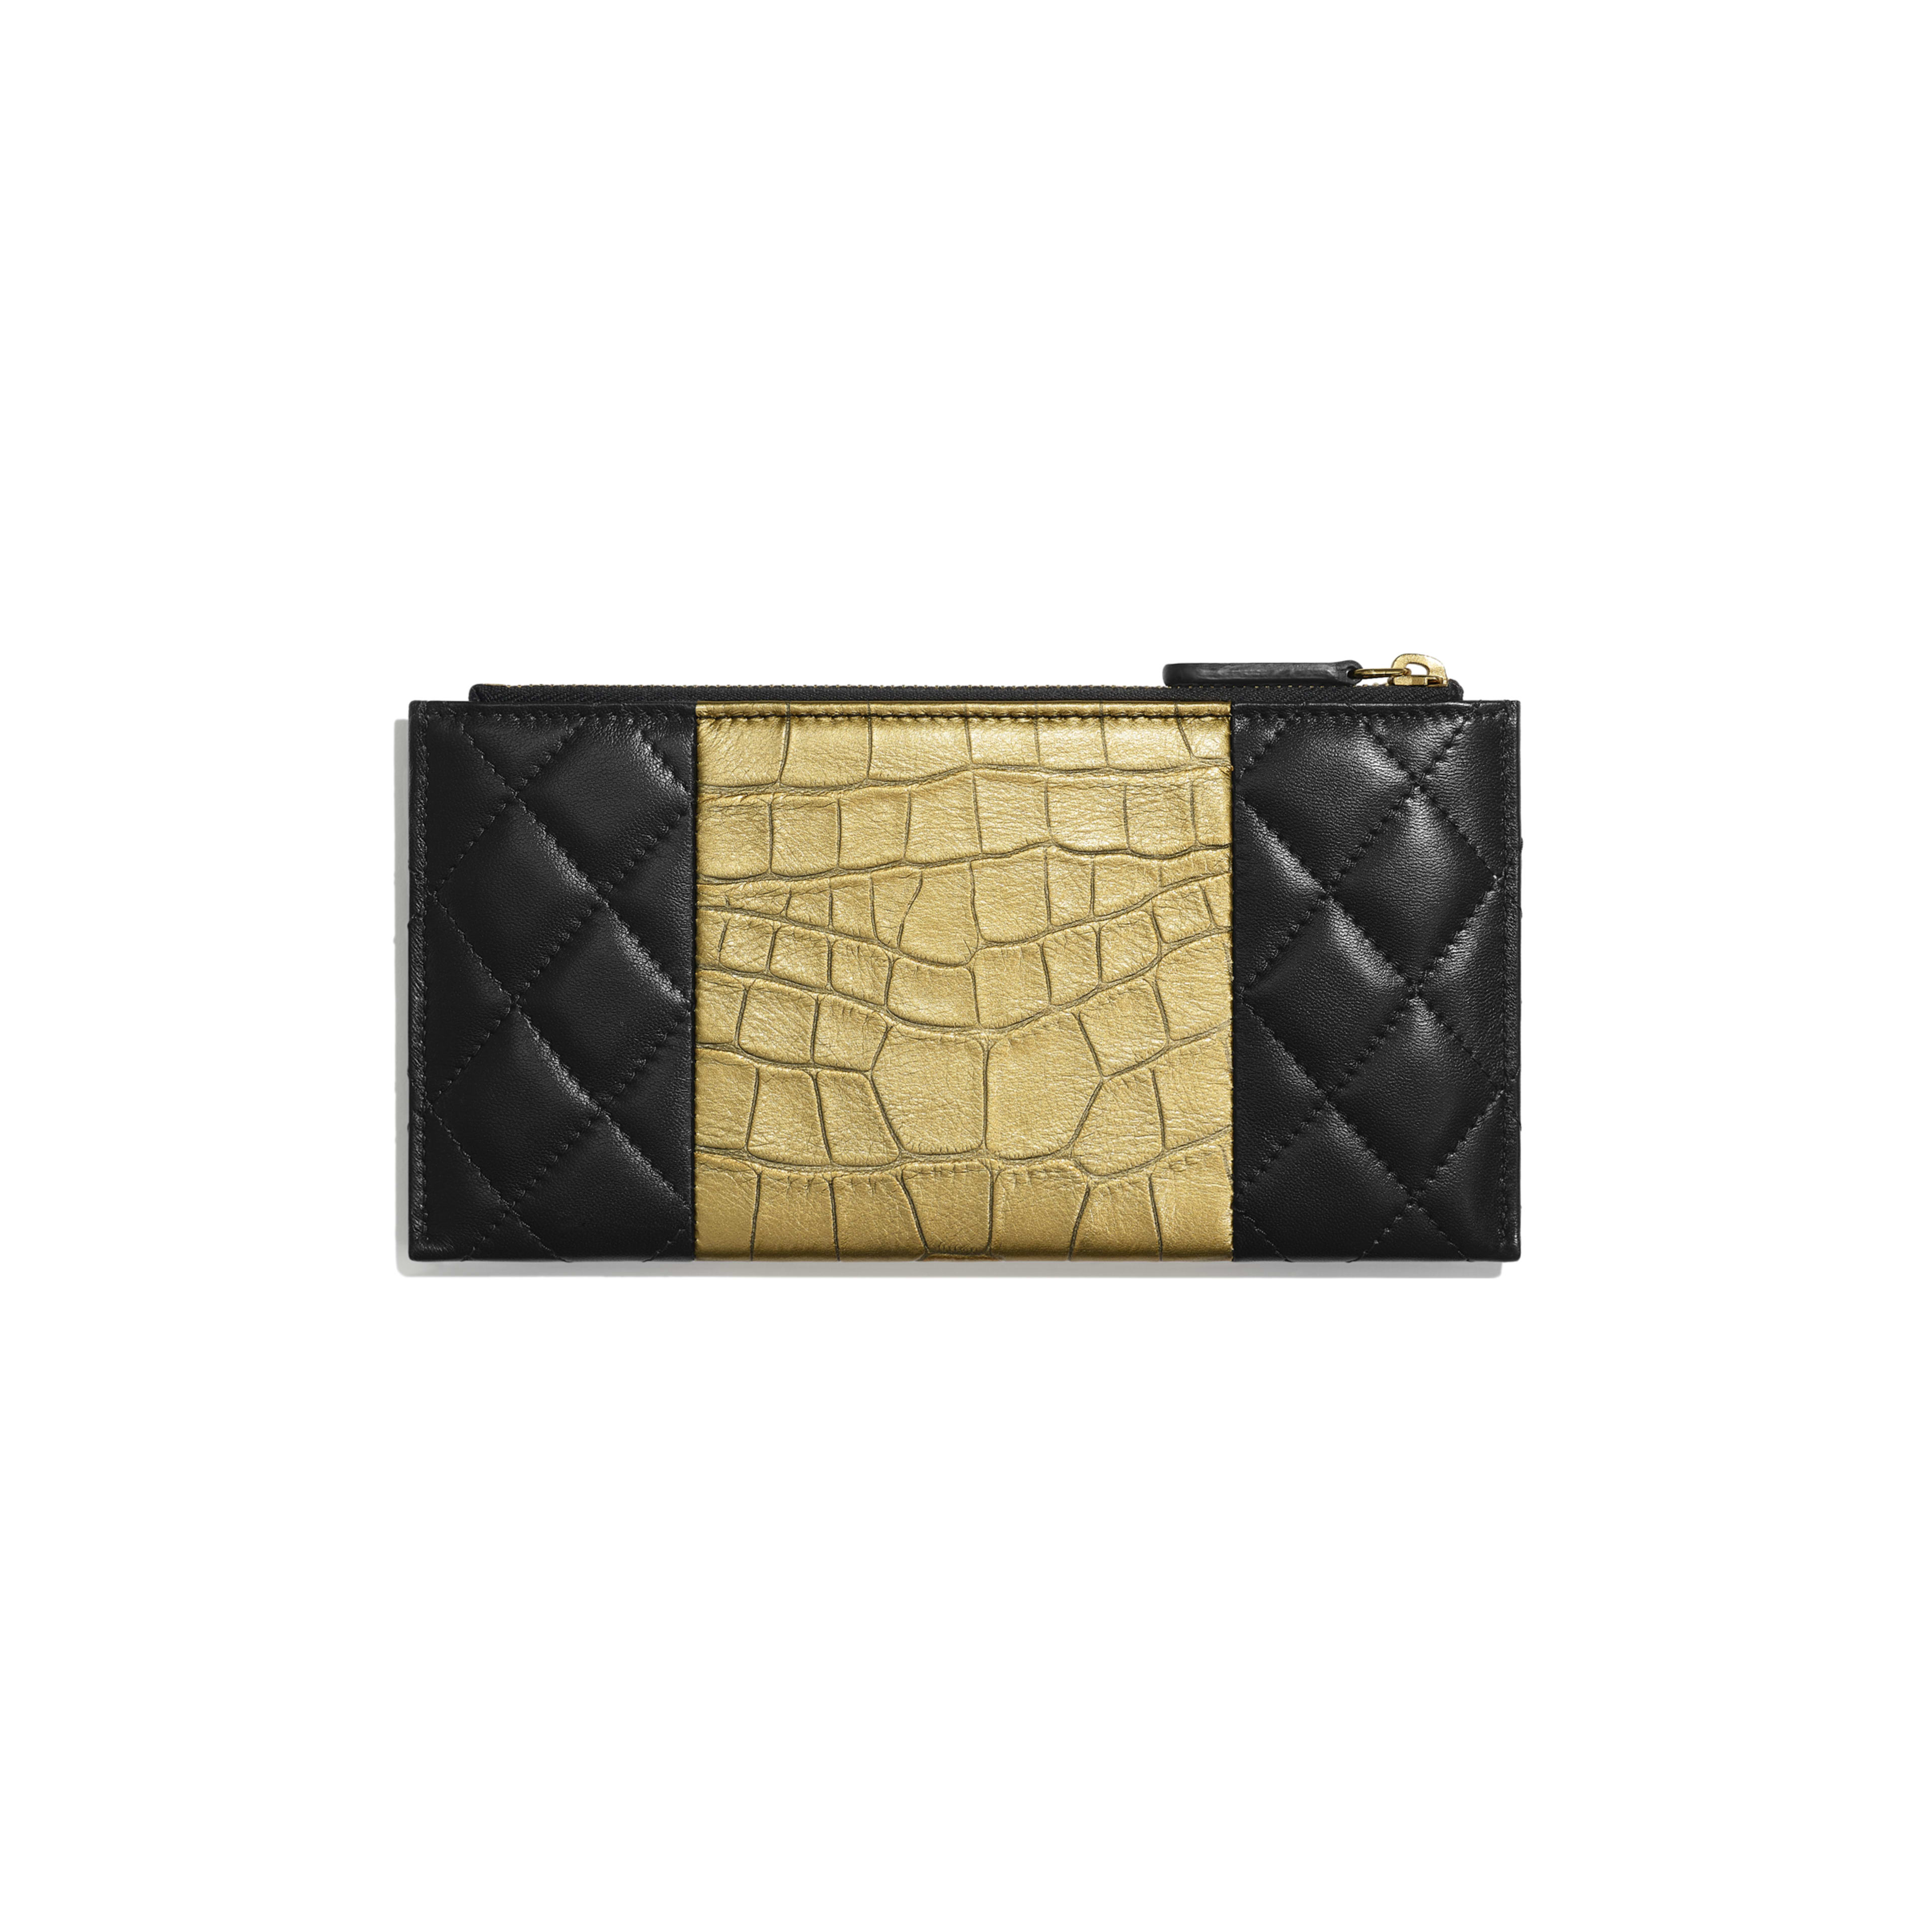 2.55 Pouch - Black & Gold - Lambskin, Crocodile Embossed Calfskin & Gold-Tone Metal - Alternative view - see full sized version